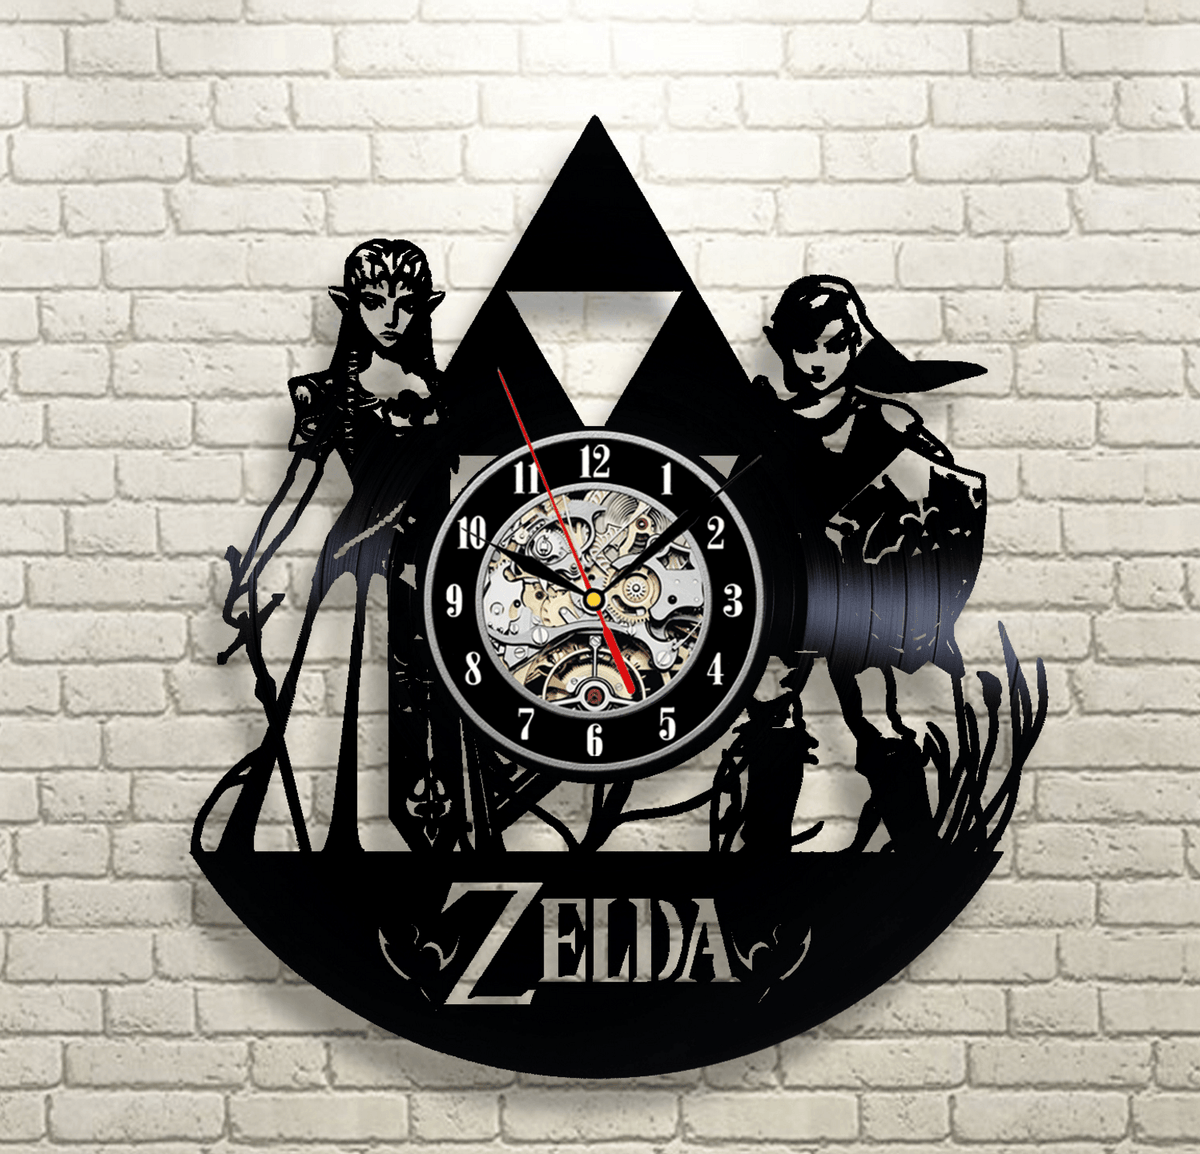 Legend of Zelda Vinyl Record Wall Clock v3